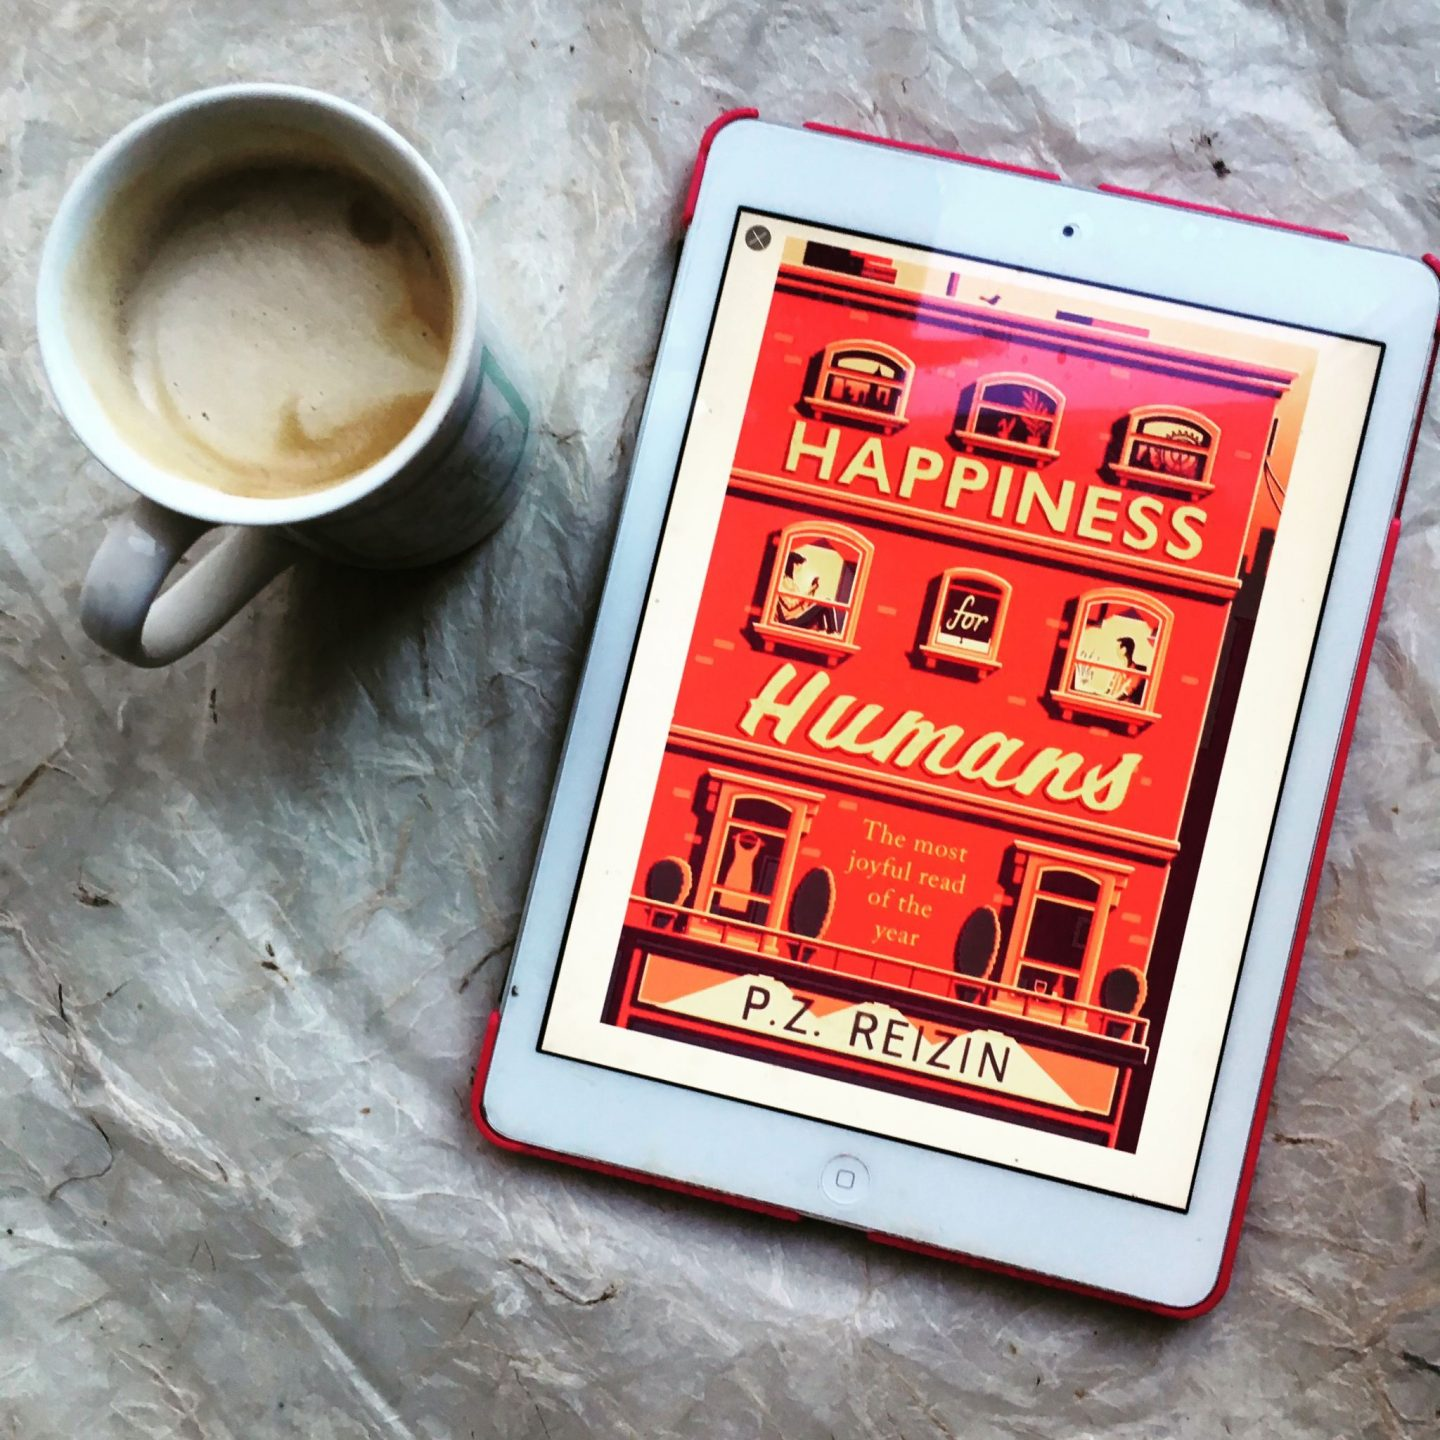 Happiness for Humans; a definite must read